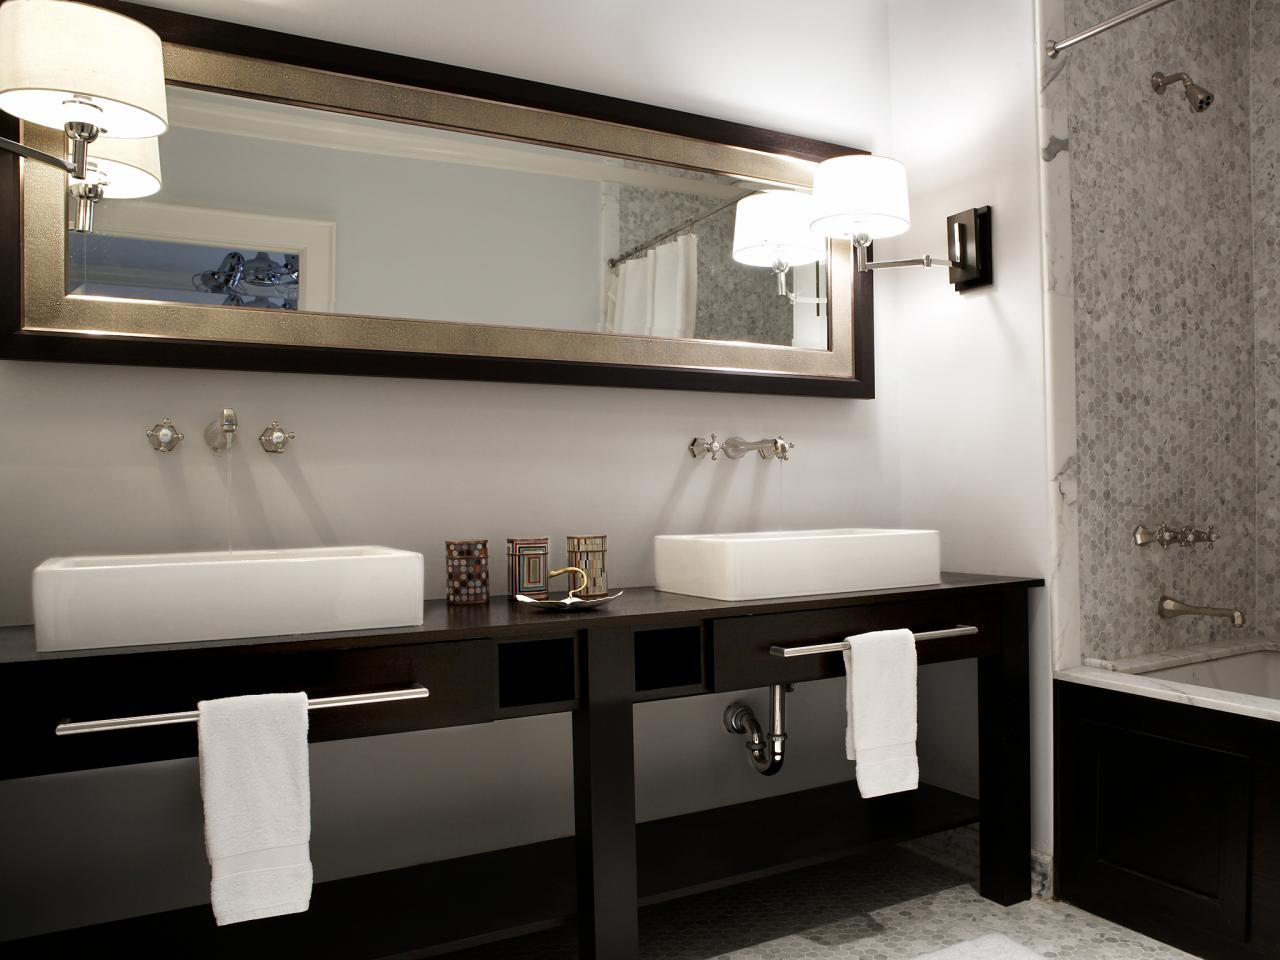 Bathroom mirrors ideas with vanity - Bathroom Vanity Mirrors